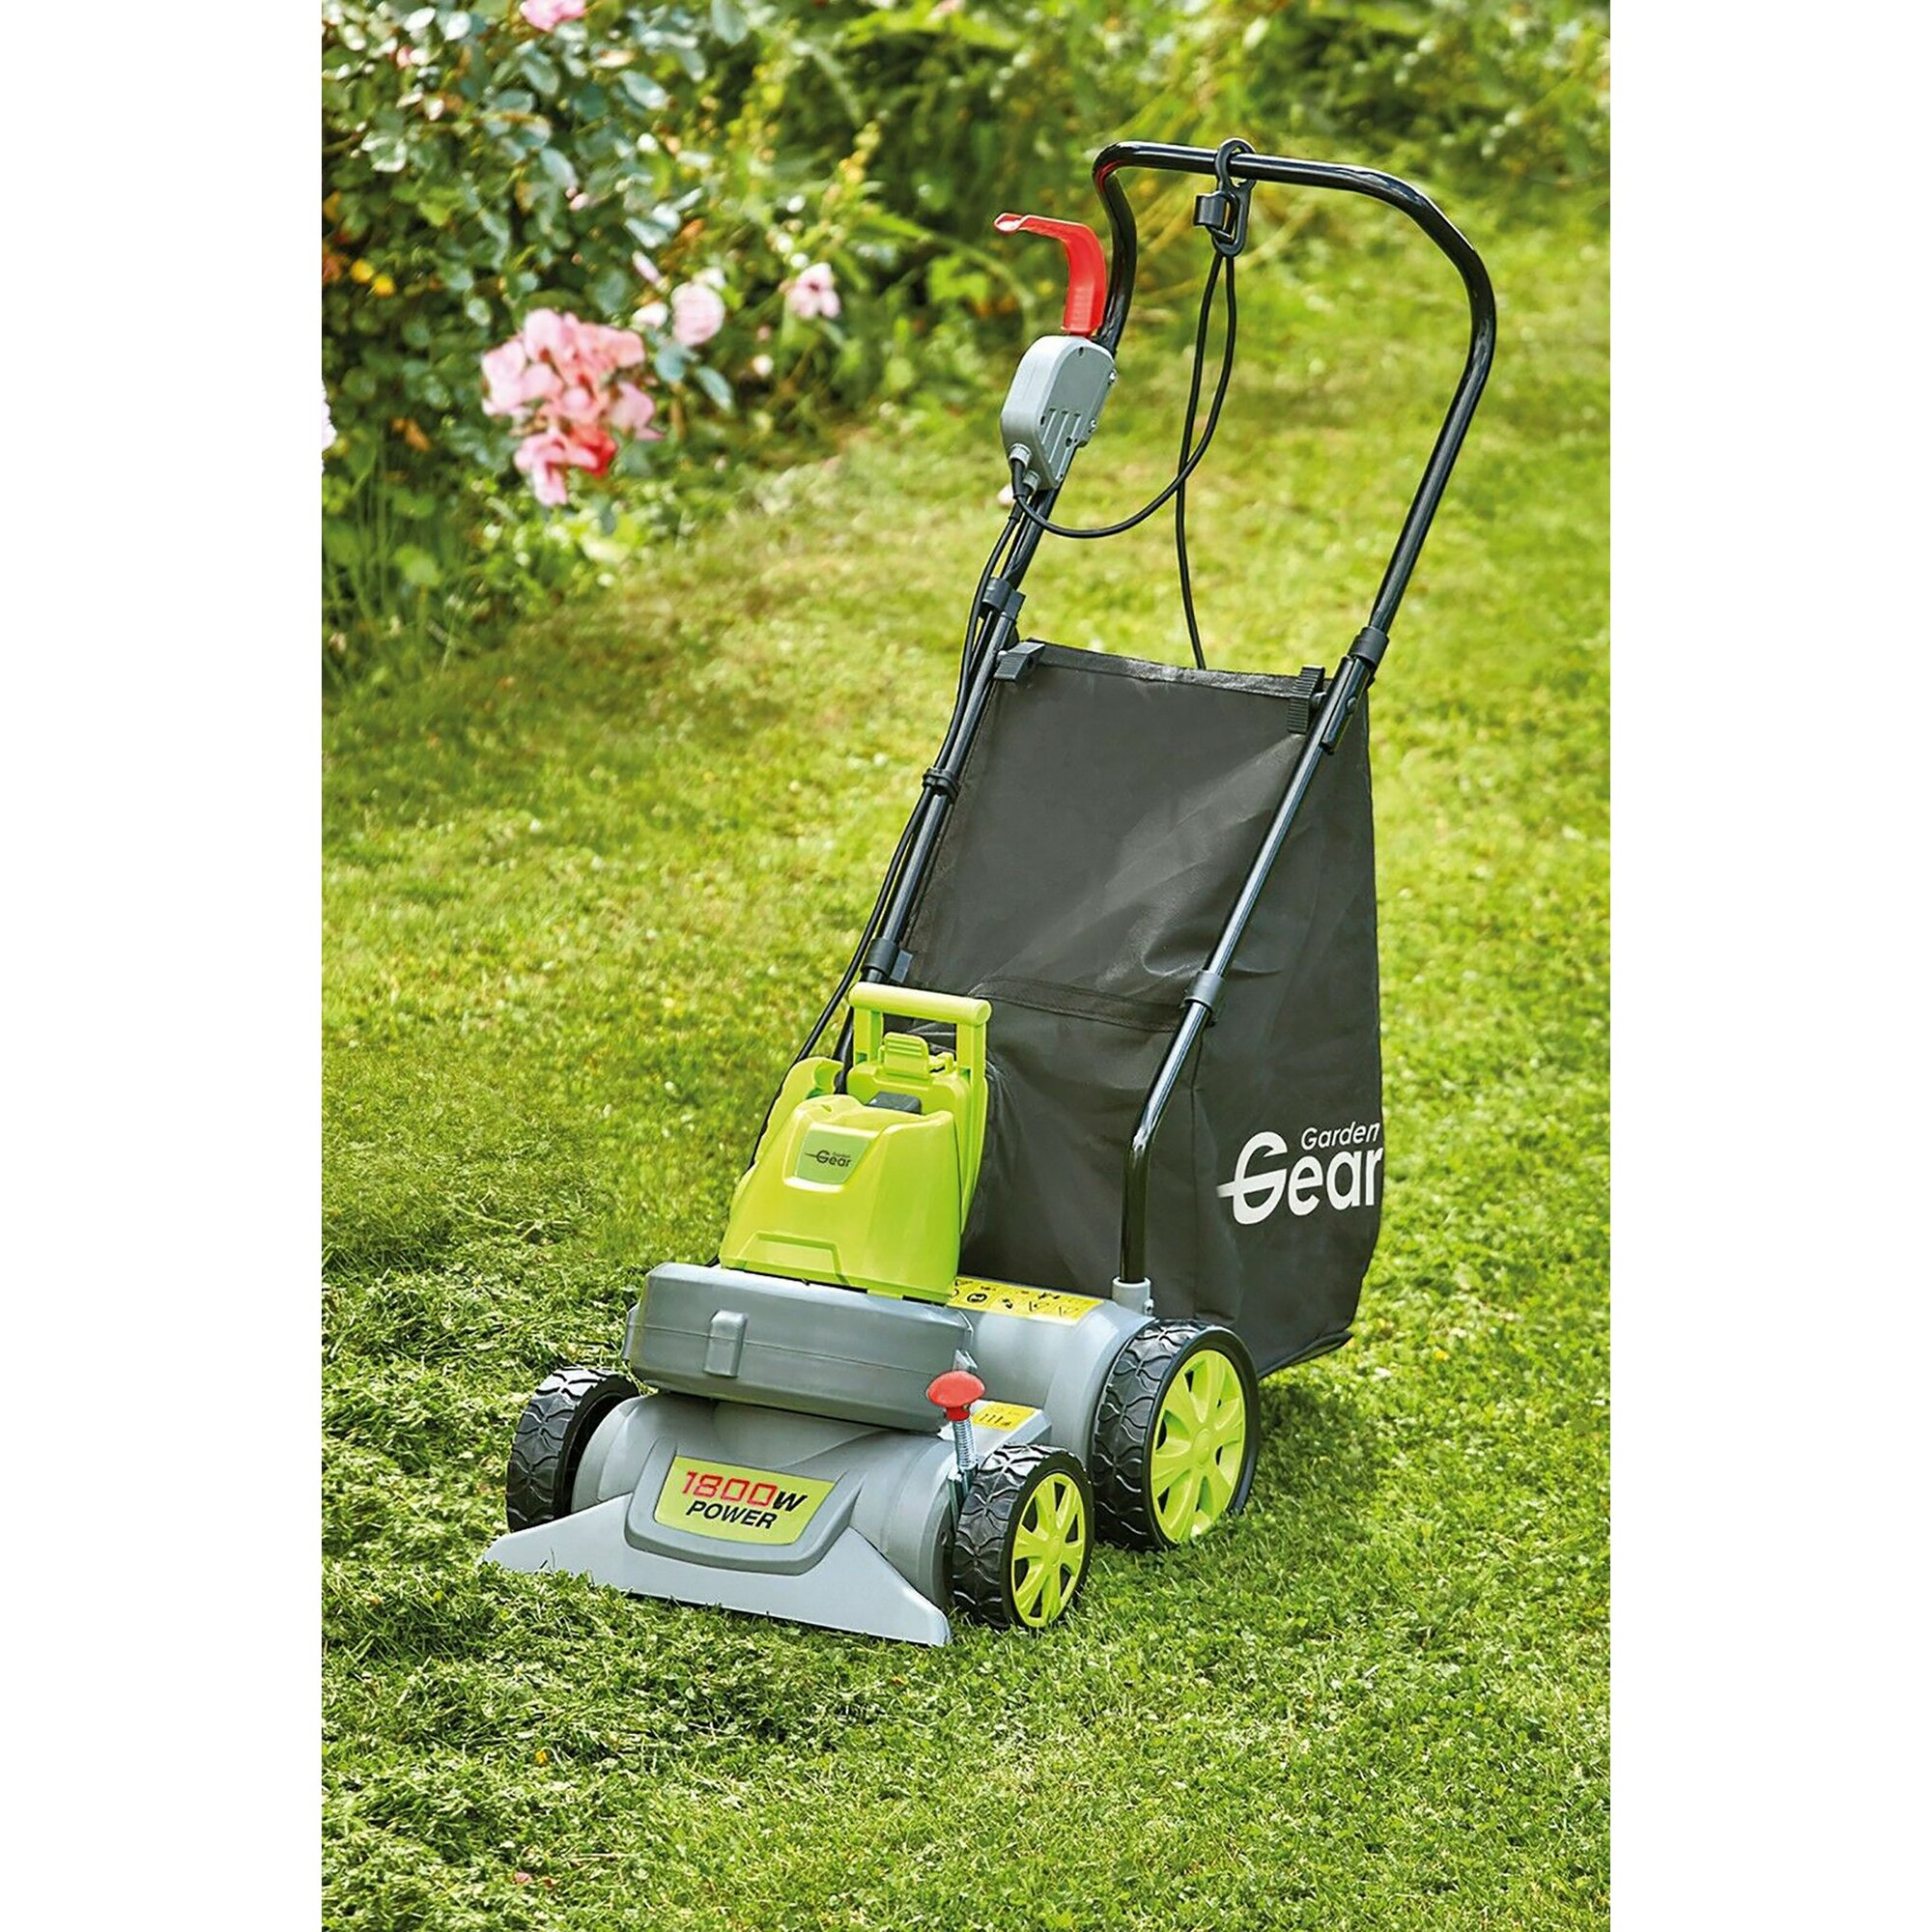 Image of 1800w 3 in 1 Garden Push Vac and Blower